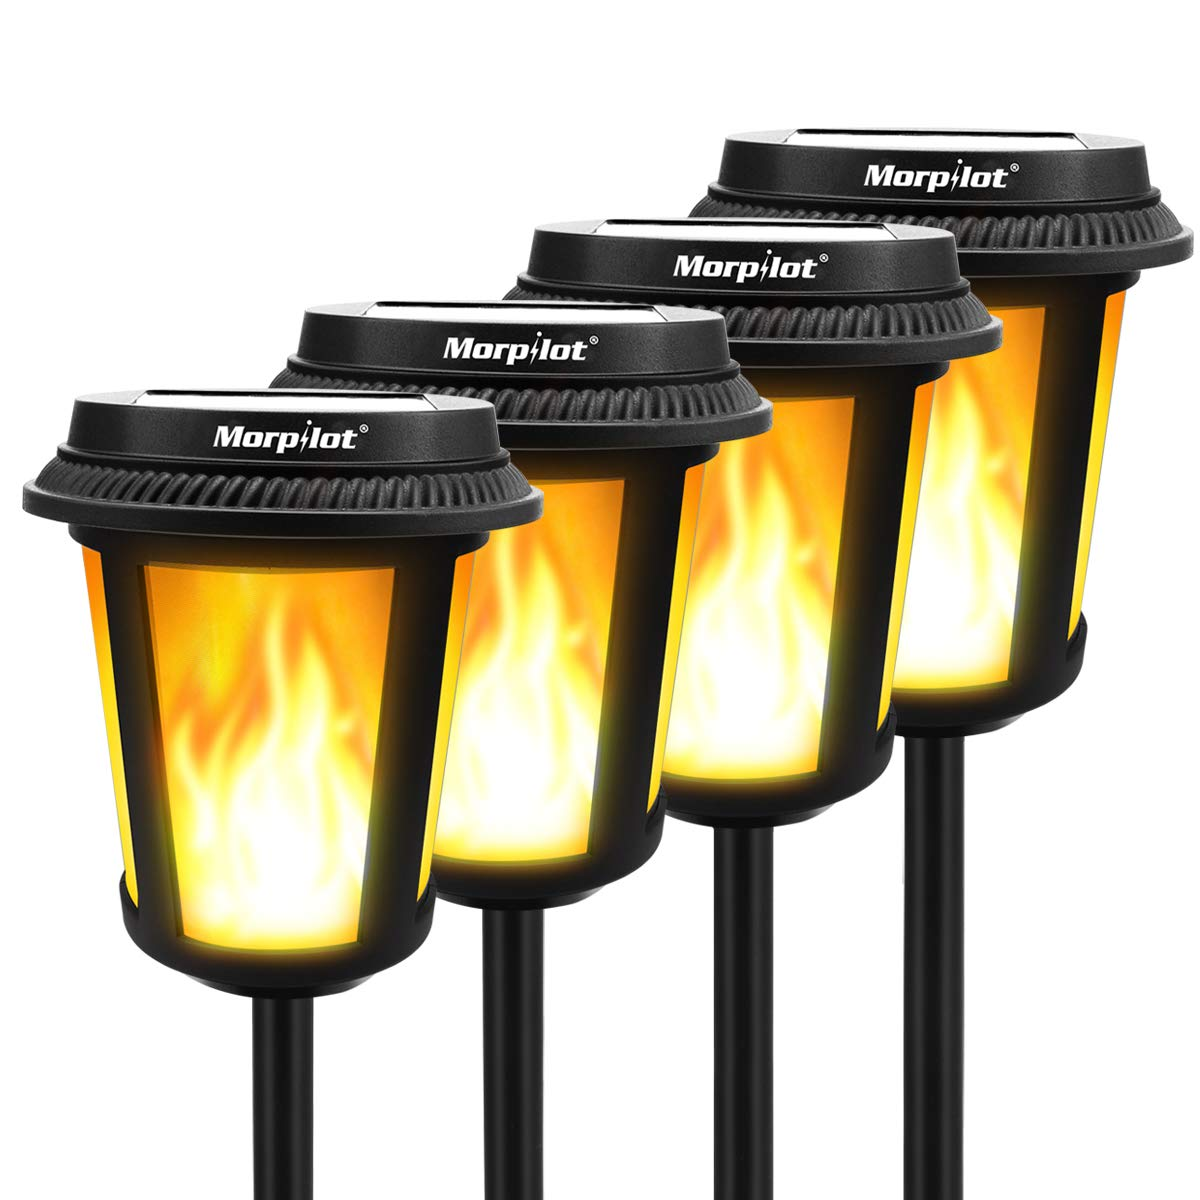 These are amazing and look fantastic in my yard! Great solar lights with lots of different options, looks like real flames!